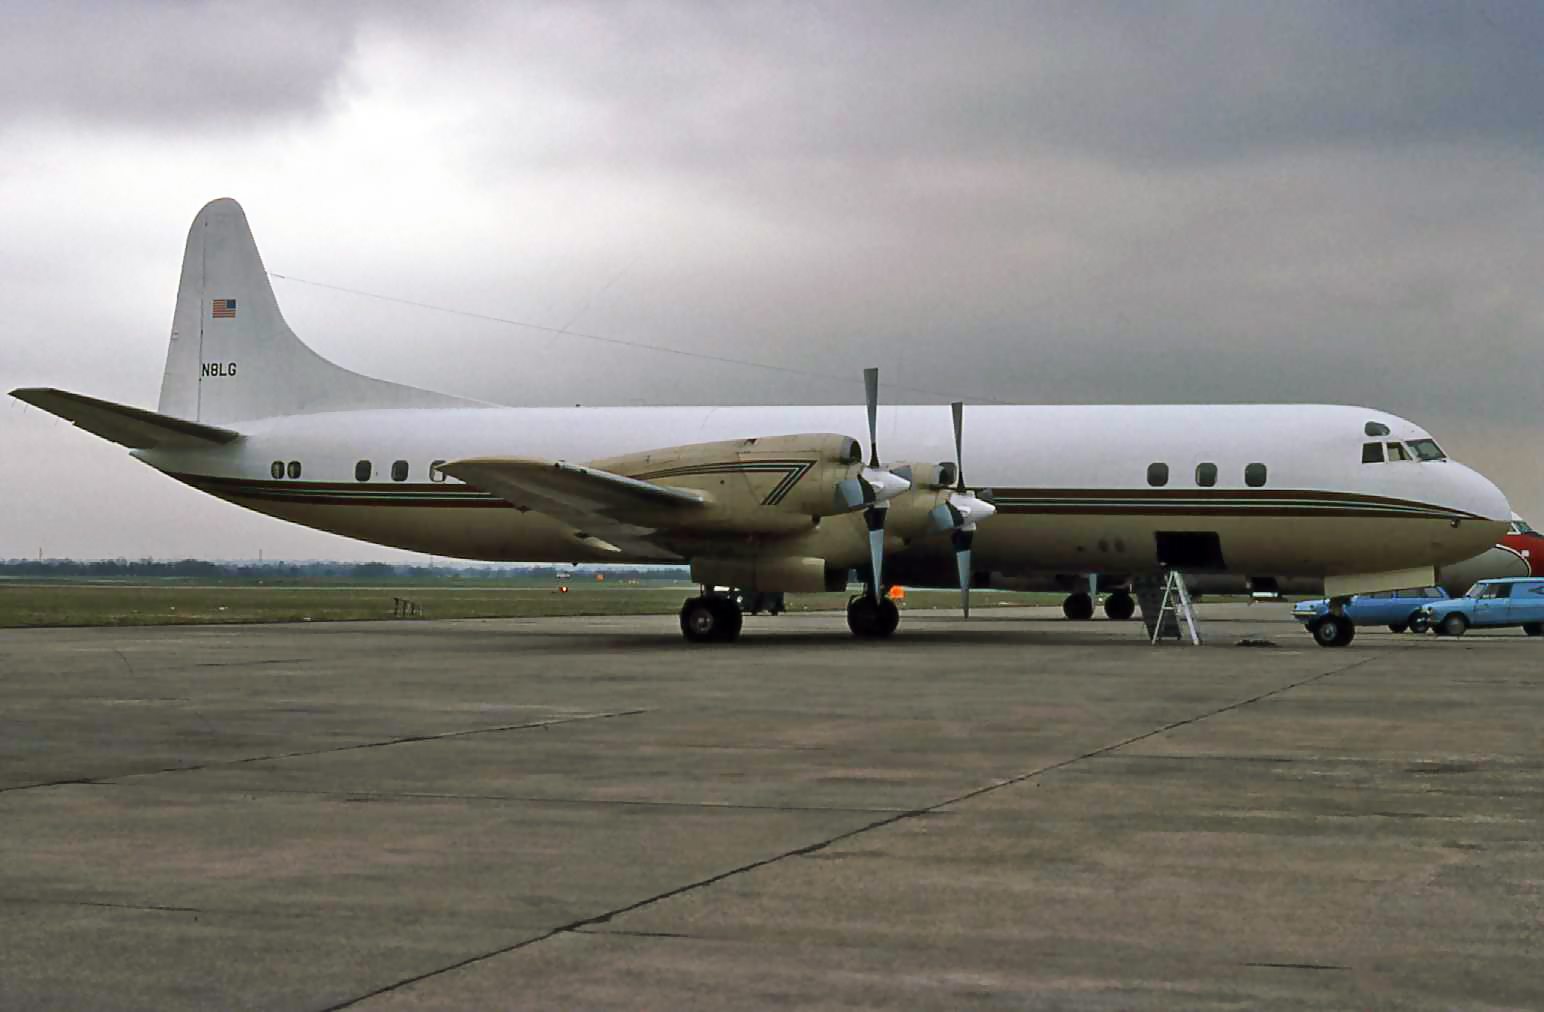 Lockheed Electra N8LG is pictured in the Southbay on 30th March 1979.The aircraft brought in John Denver on 29th for a concert in Manchester. The aircraft was in full VIP configuration and looked immaculate inside and out!Photo Peter H.